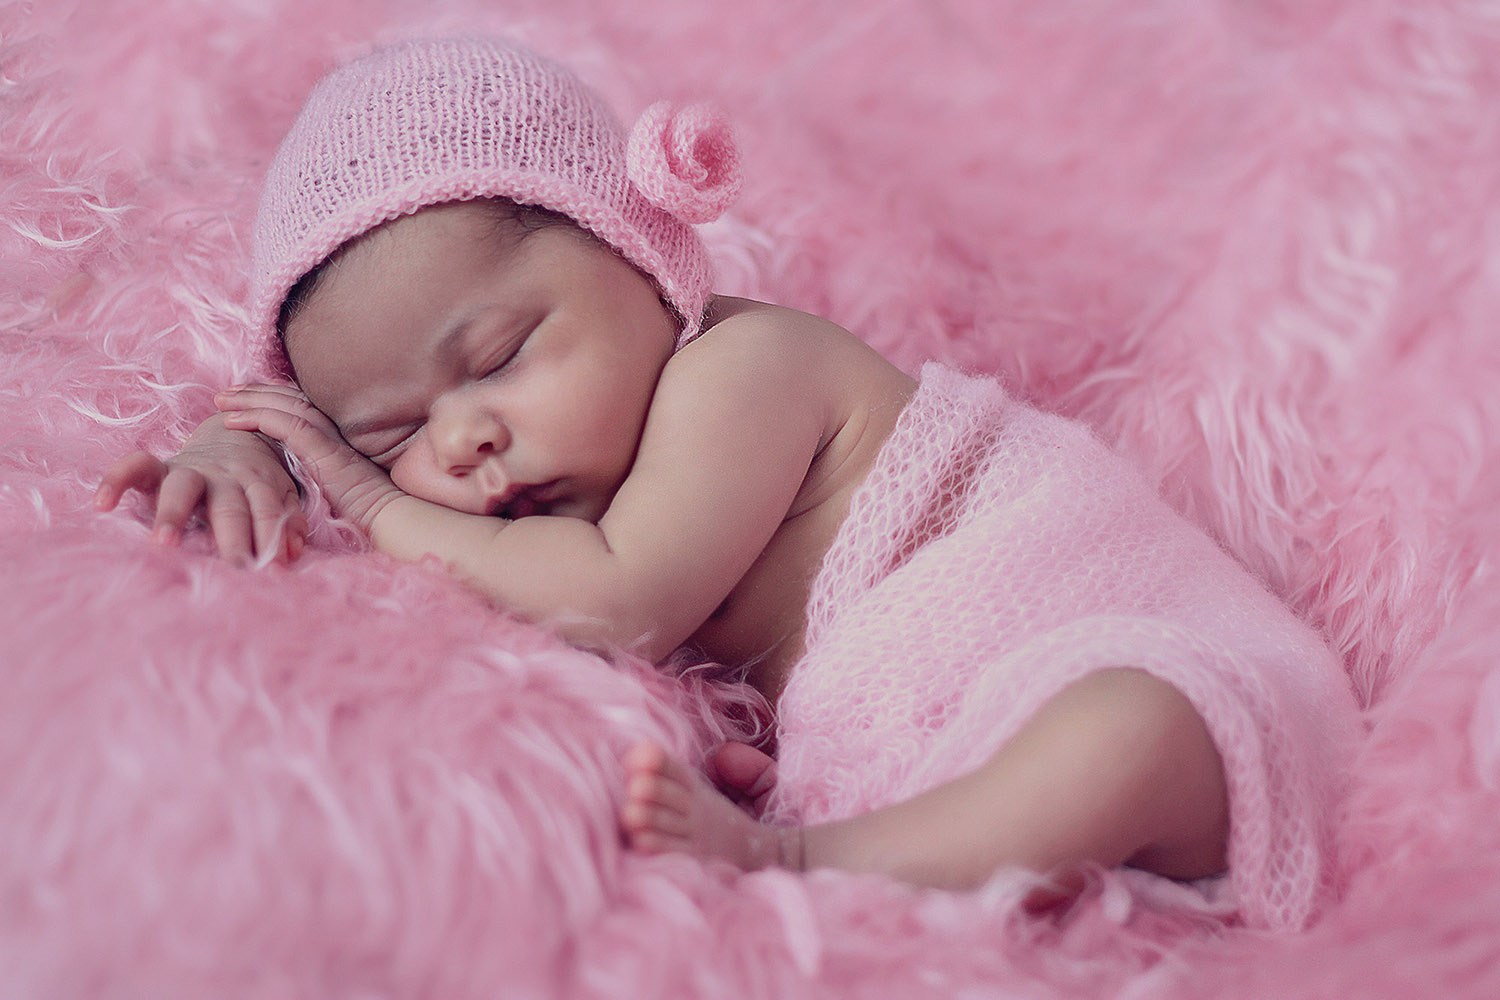 Sleeping infant in knit cap on a pink fur